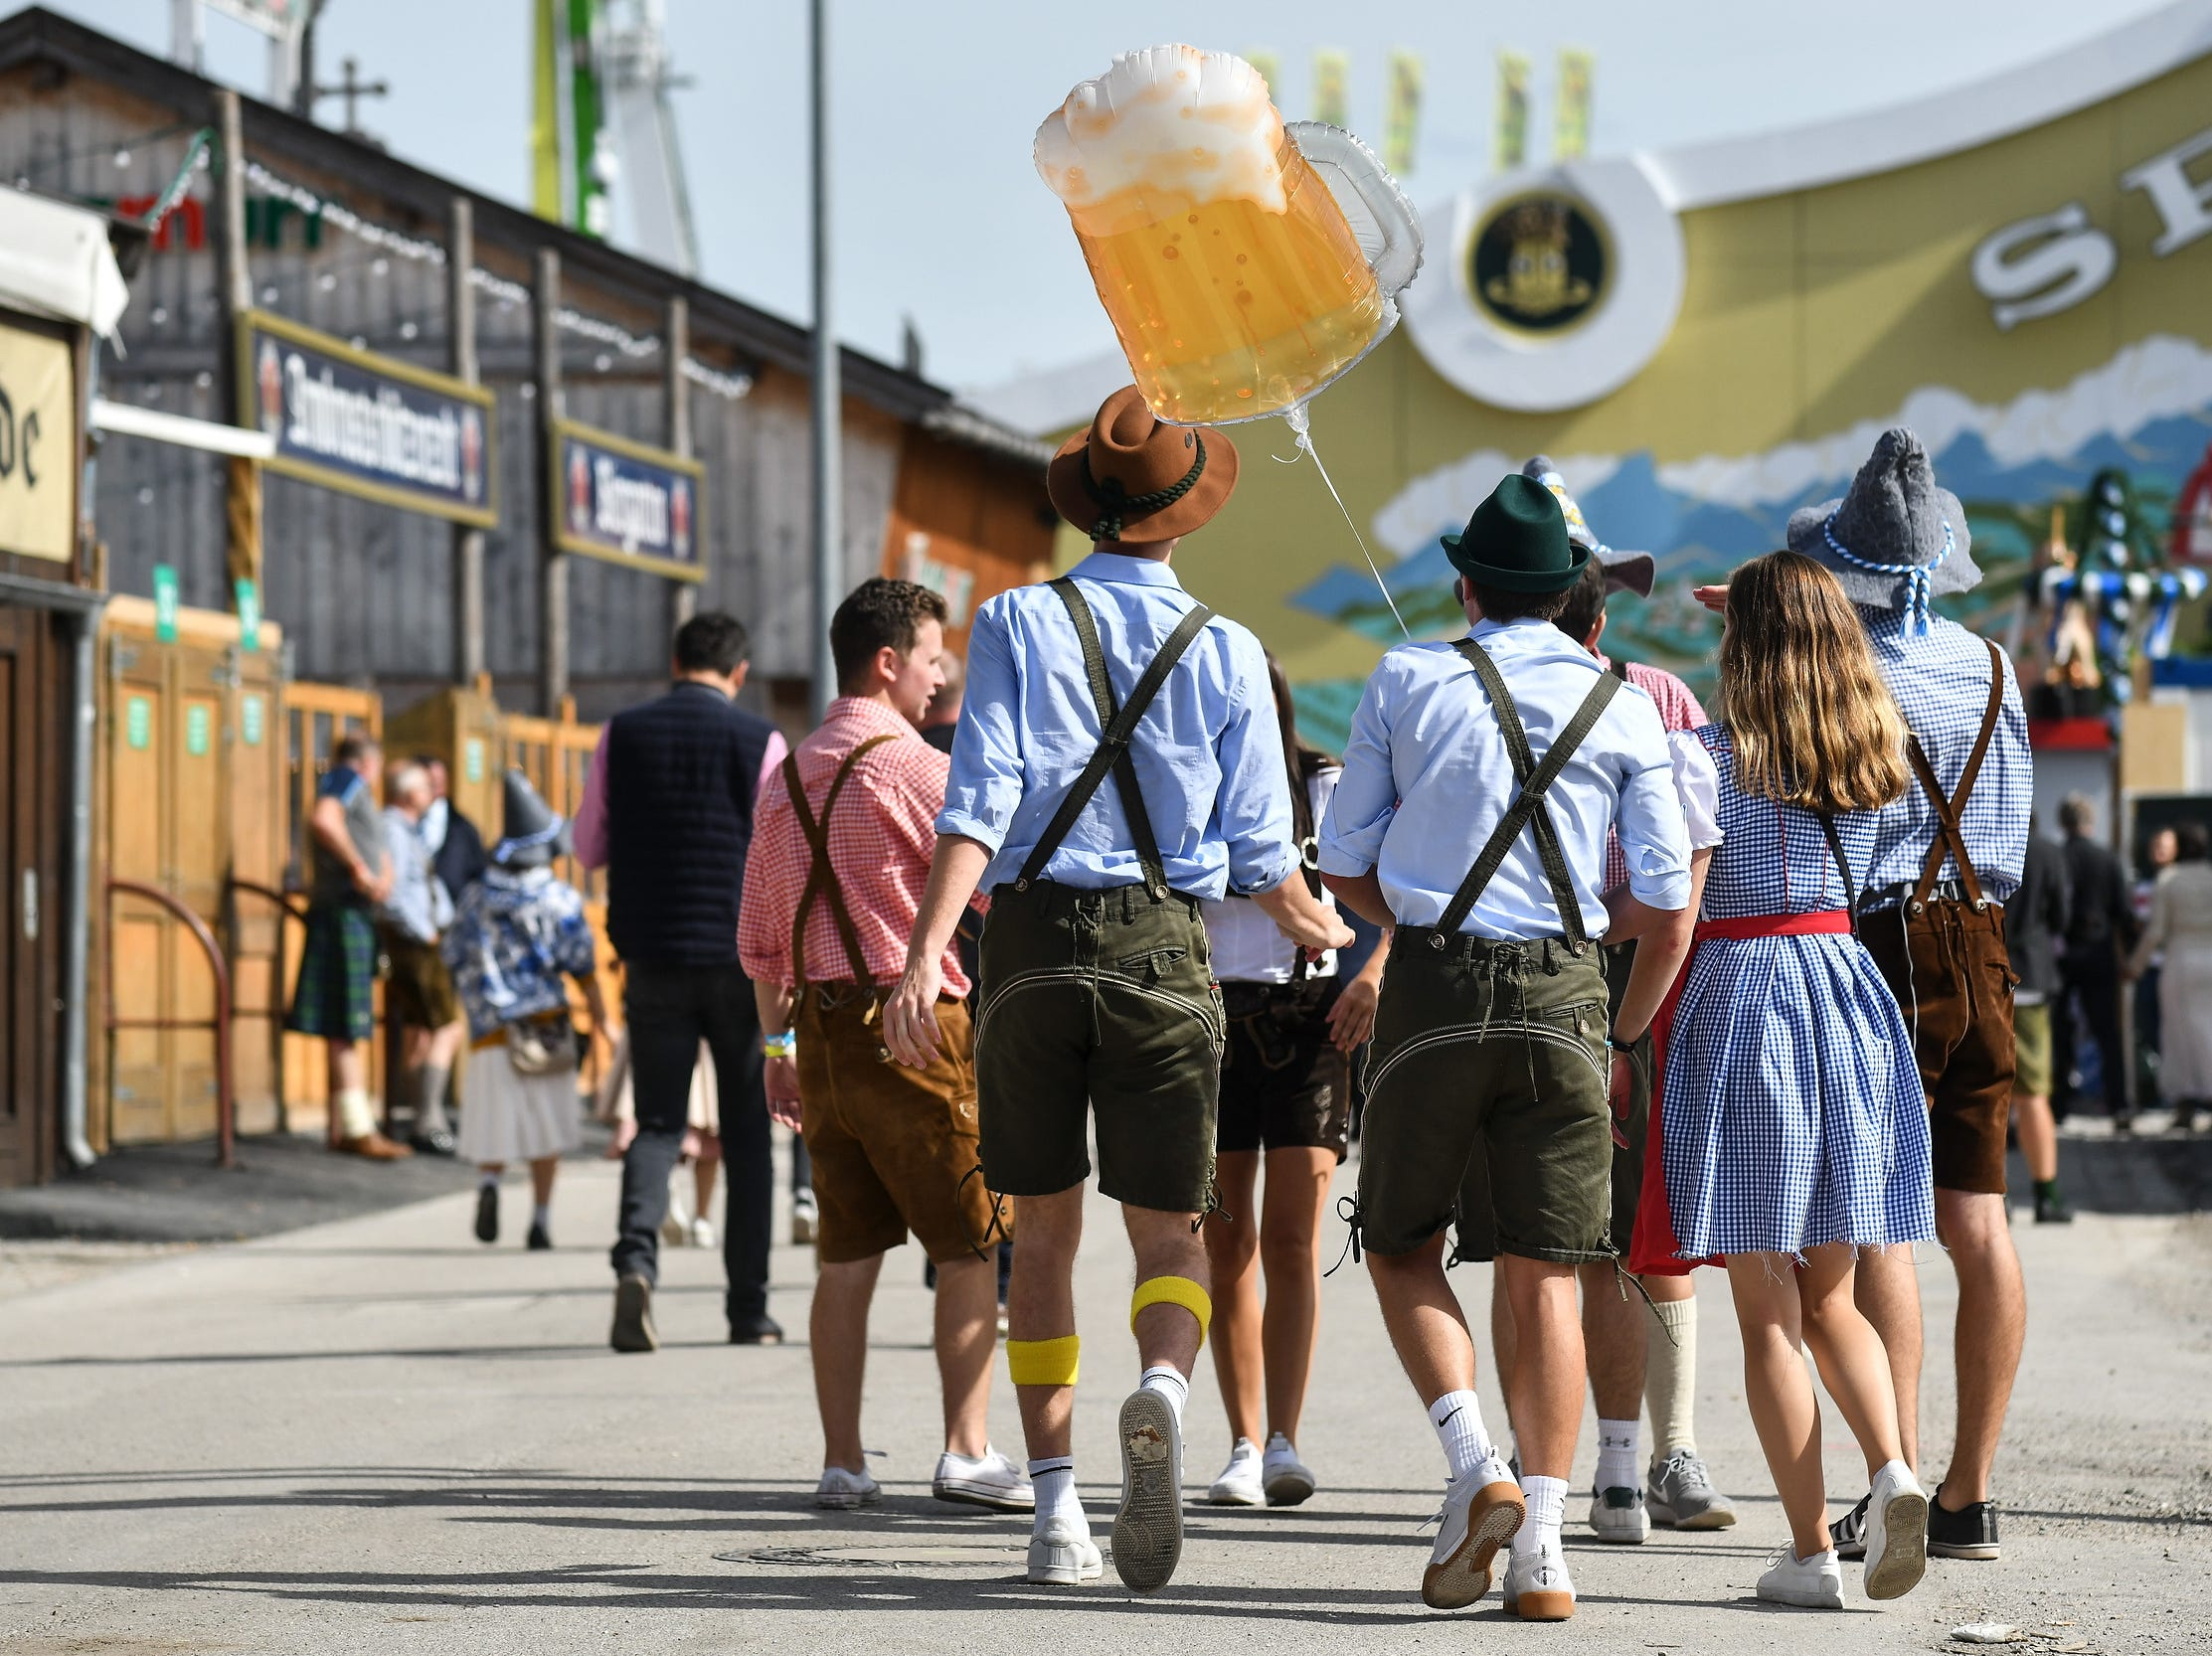 Revellers wearing traditional Alpine folk attire carry a balloon in the shape of a beer mug during the opening day.